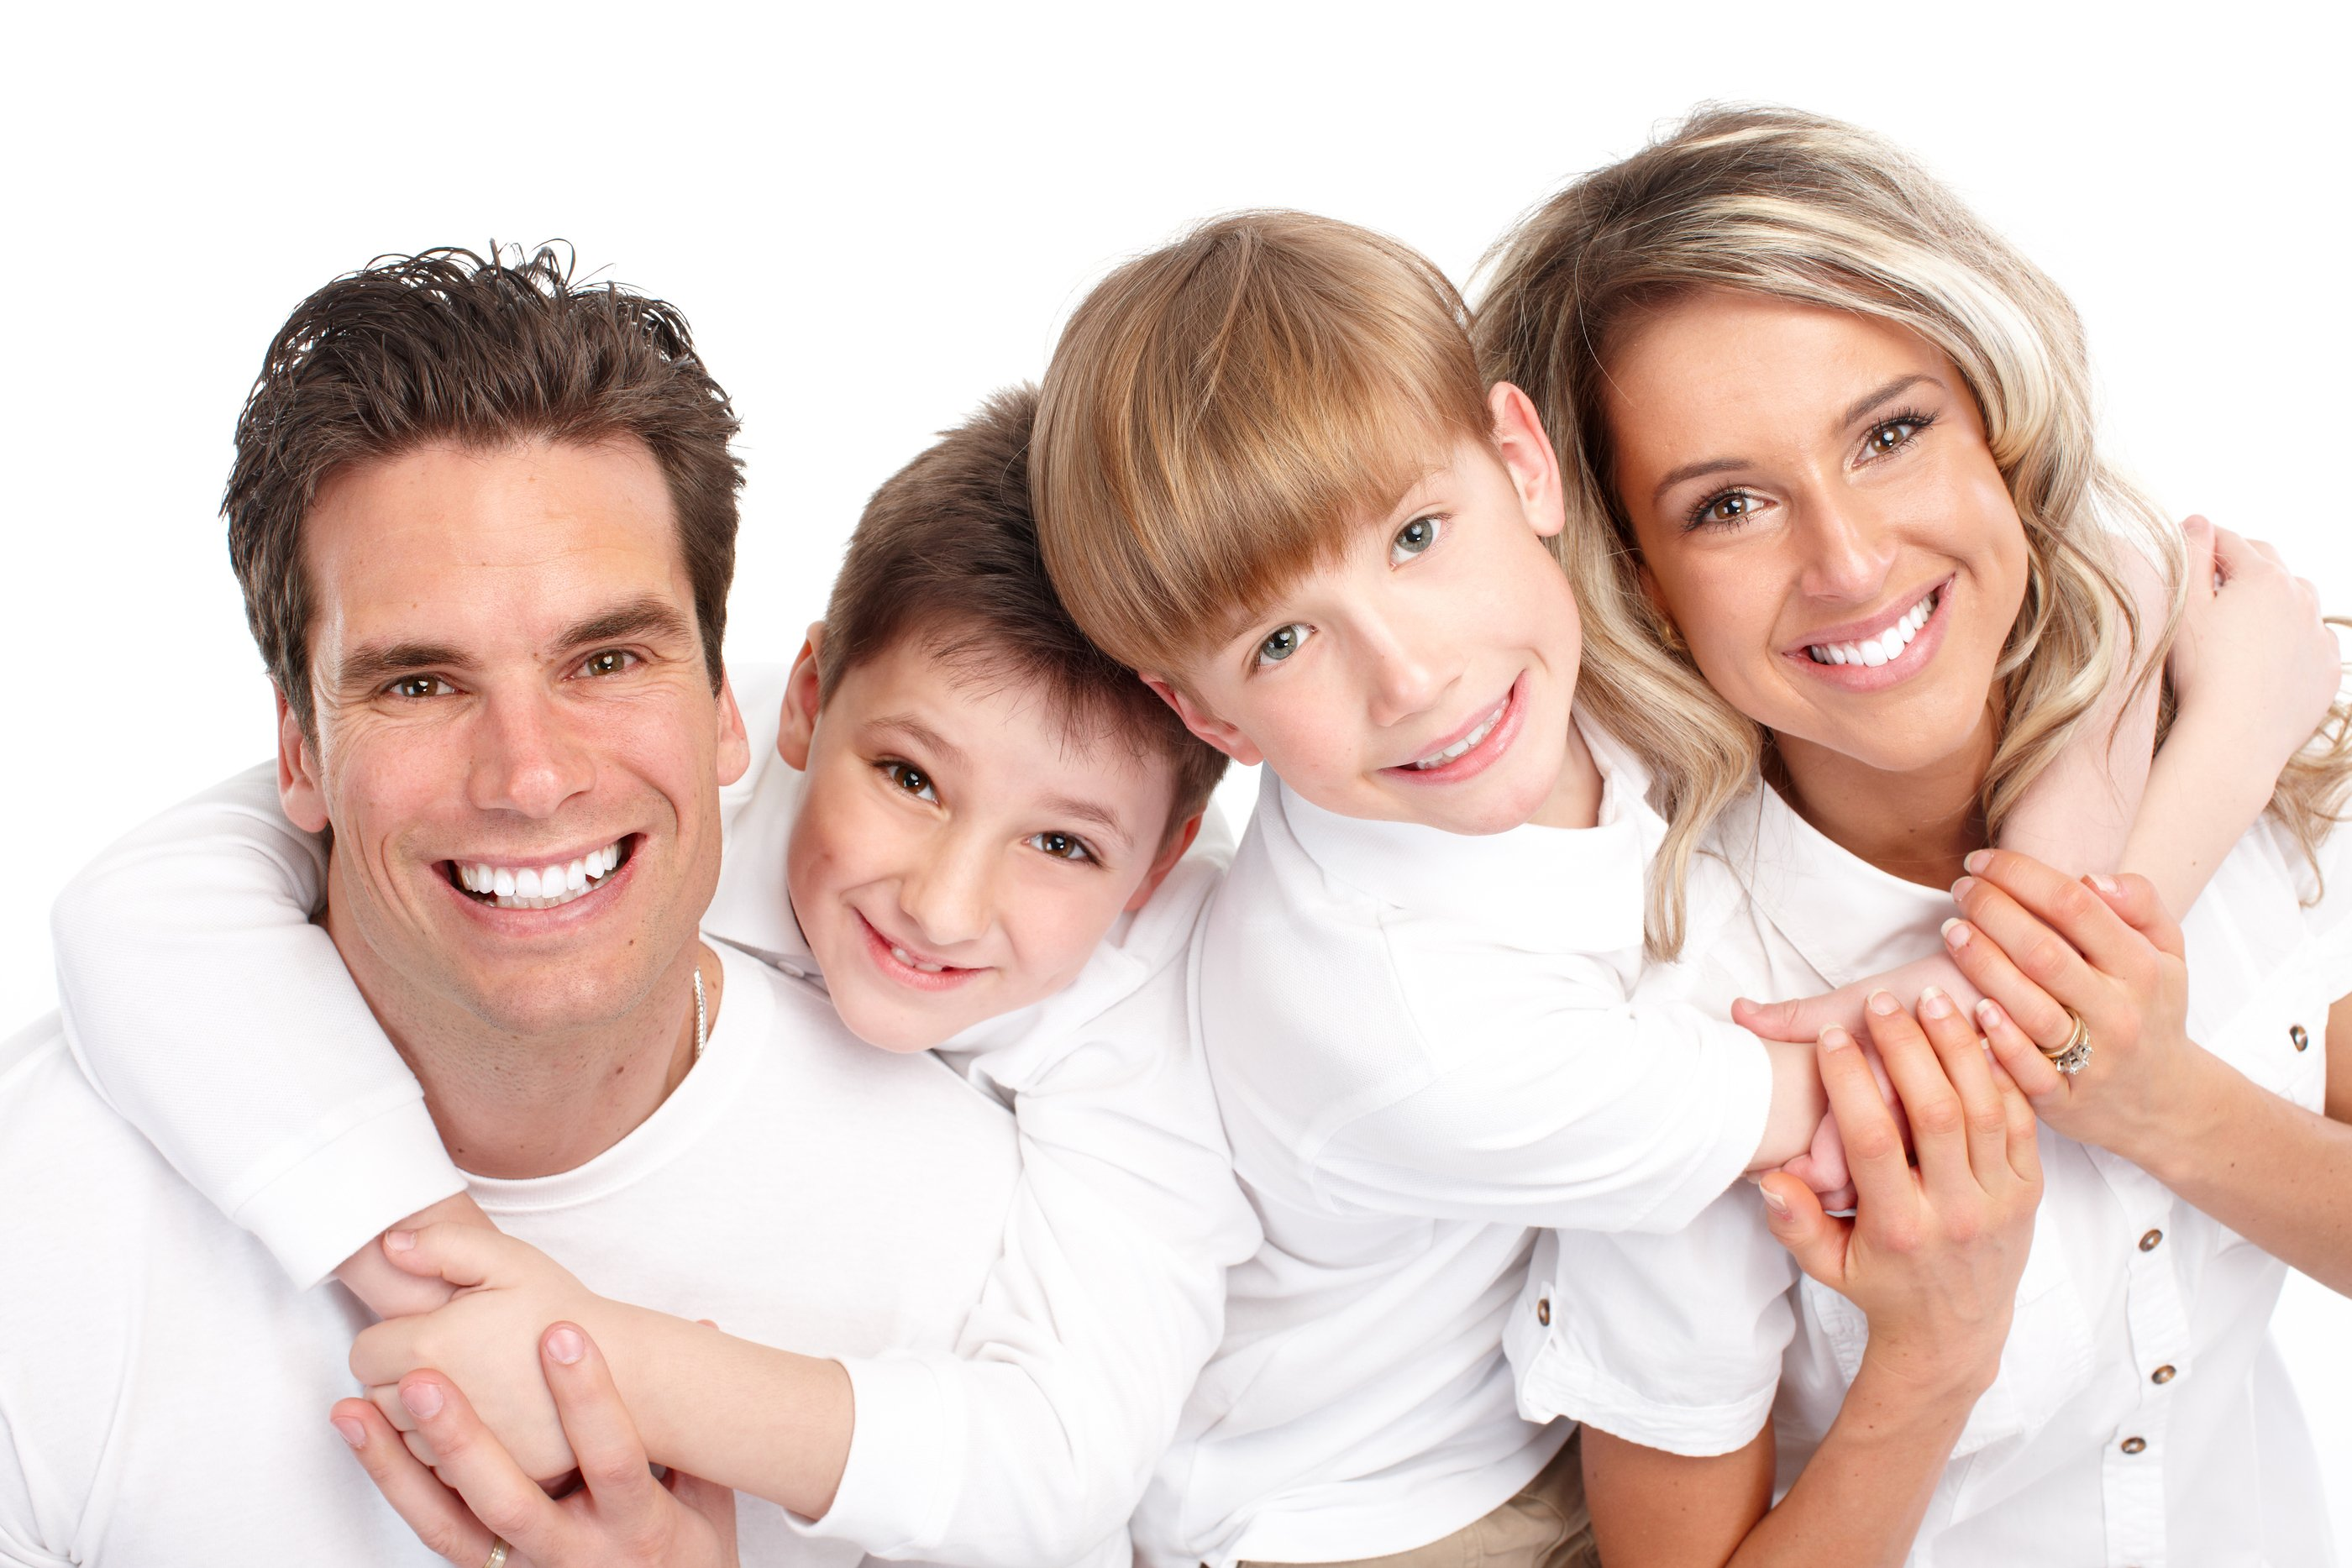 Happy family. Father mother and children. Over white background